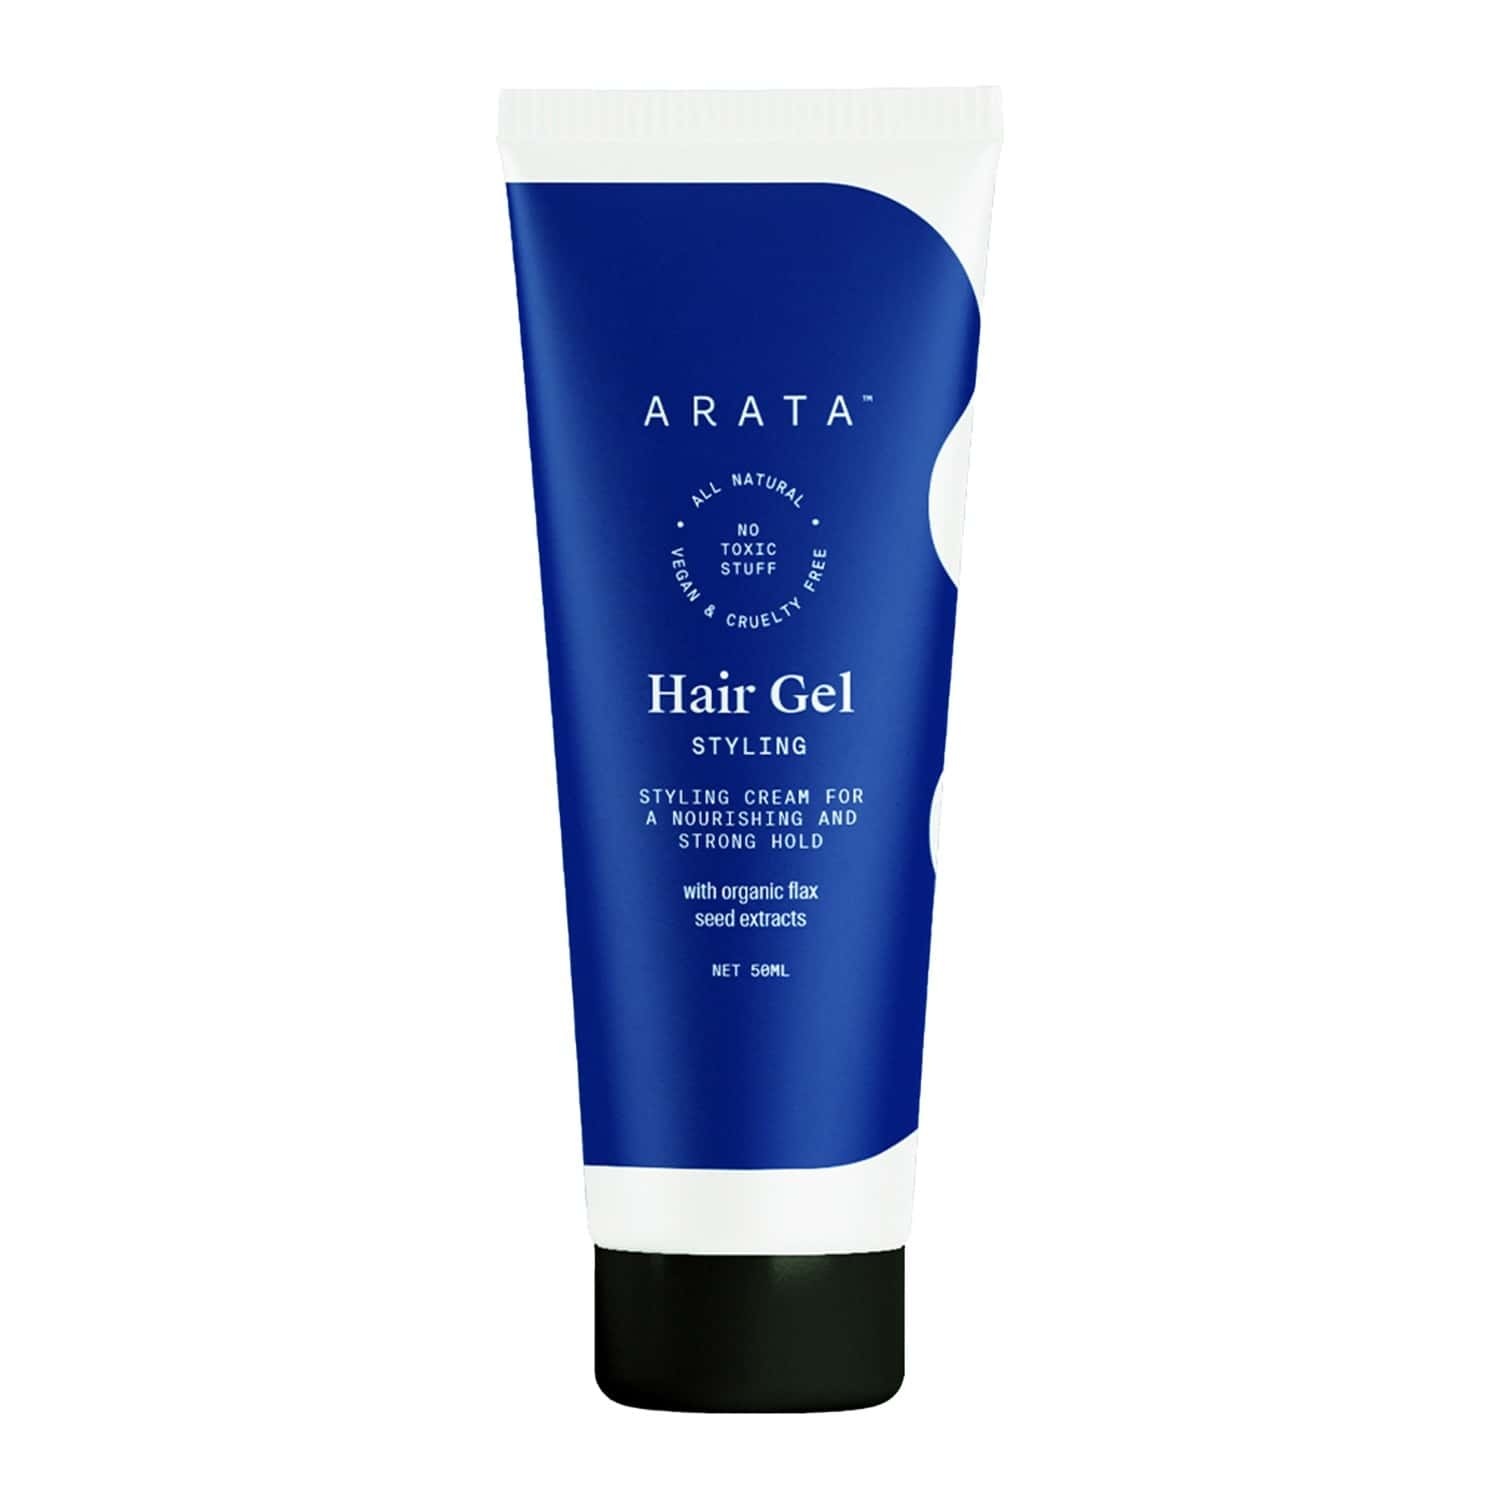 Arata Natural Hair Gel For Studio Styling, Shaping, Strong Hold And Nourishment With Organic Flaxseed And Olive Extracts For Men/women (50 Ml)